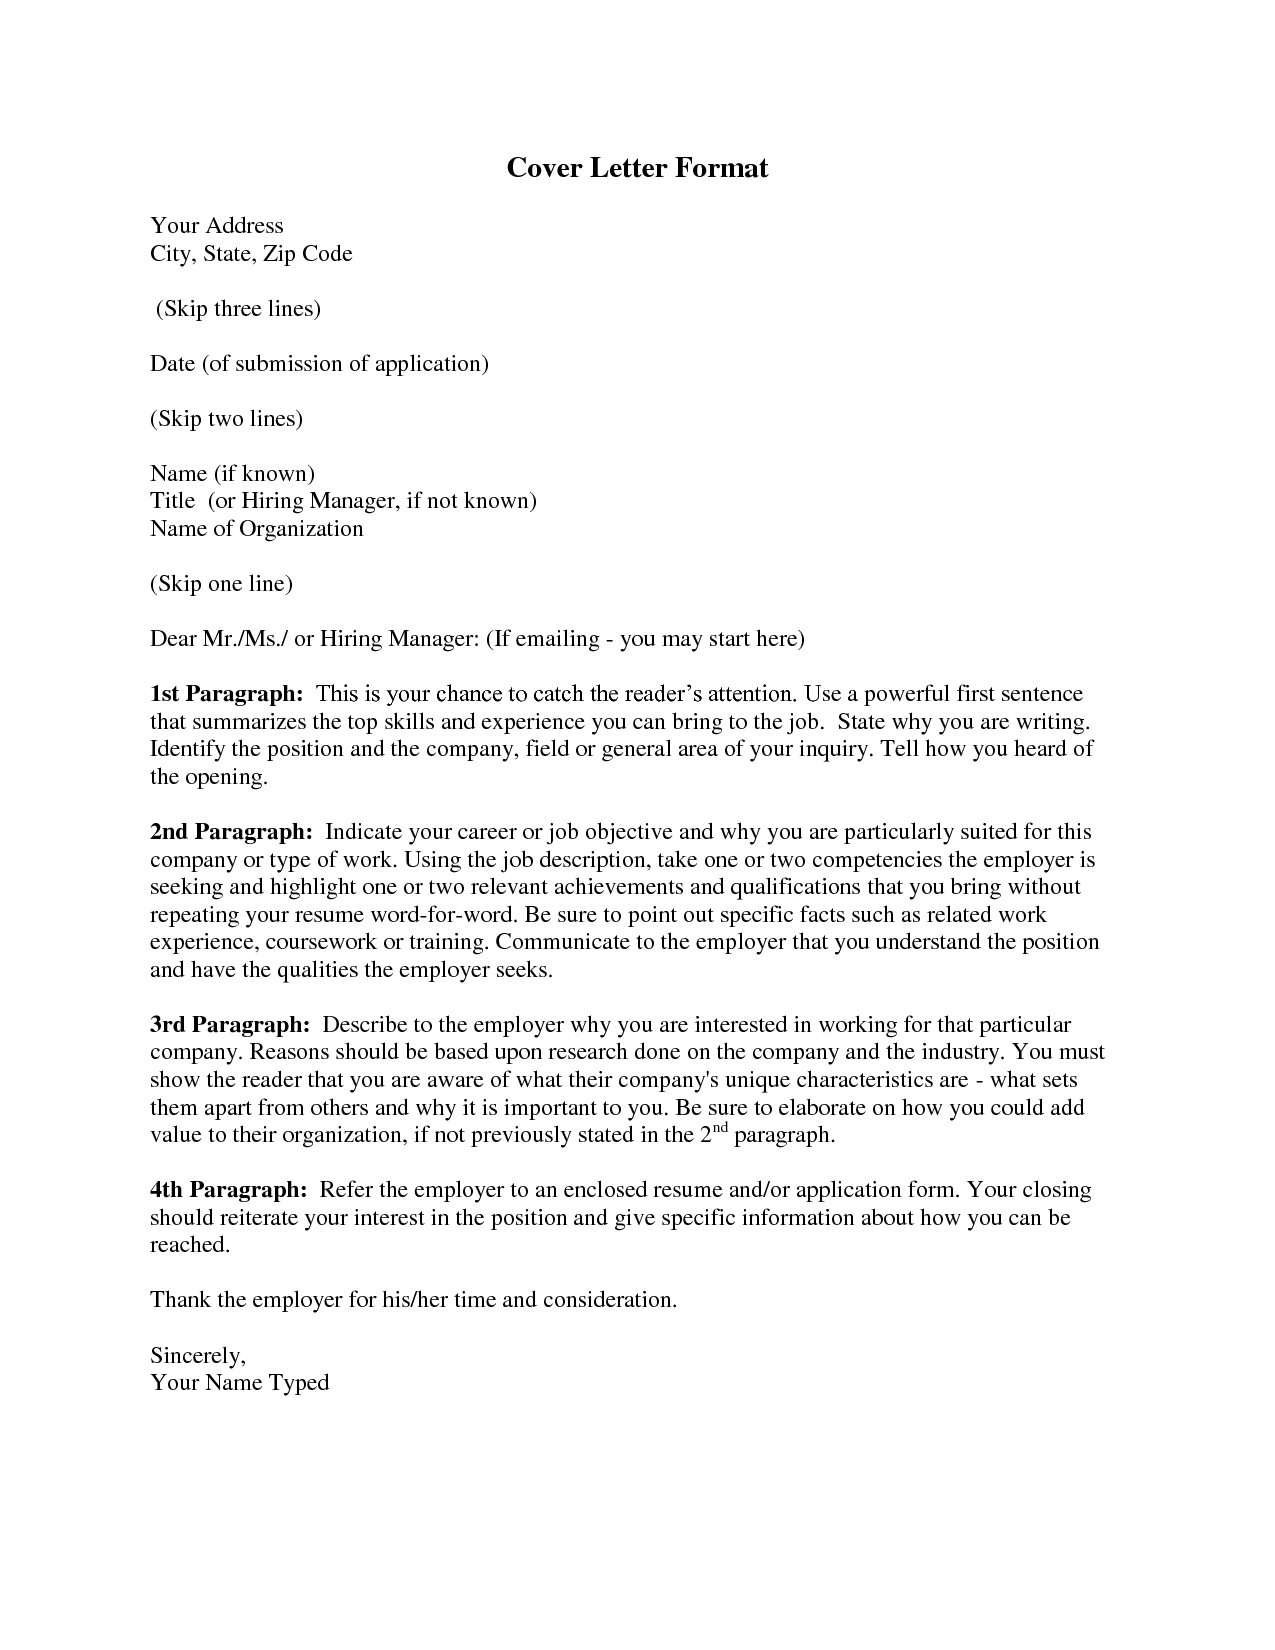 New Letter Format For Job You Can Download Full Resume Template Here Http Cover Application Dissertation Submission Form